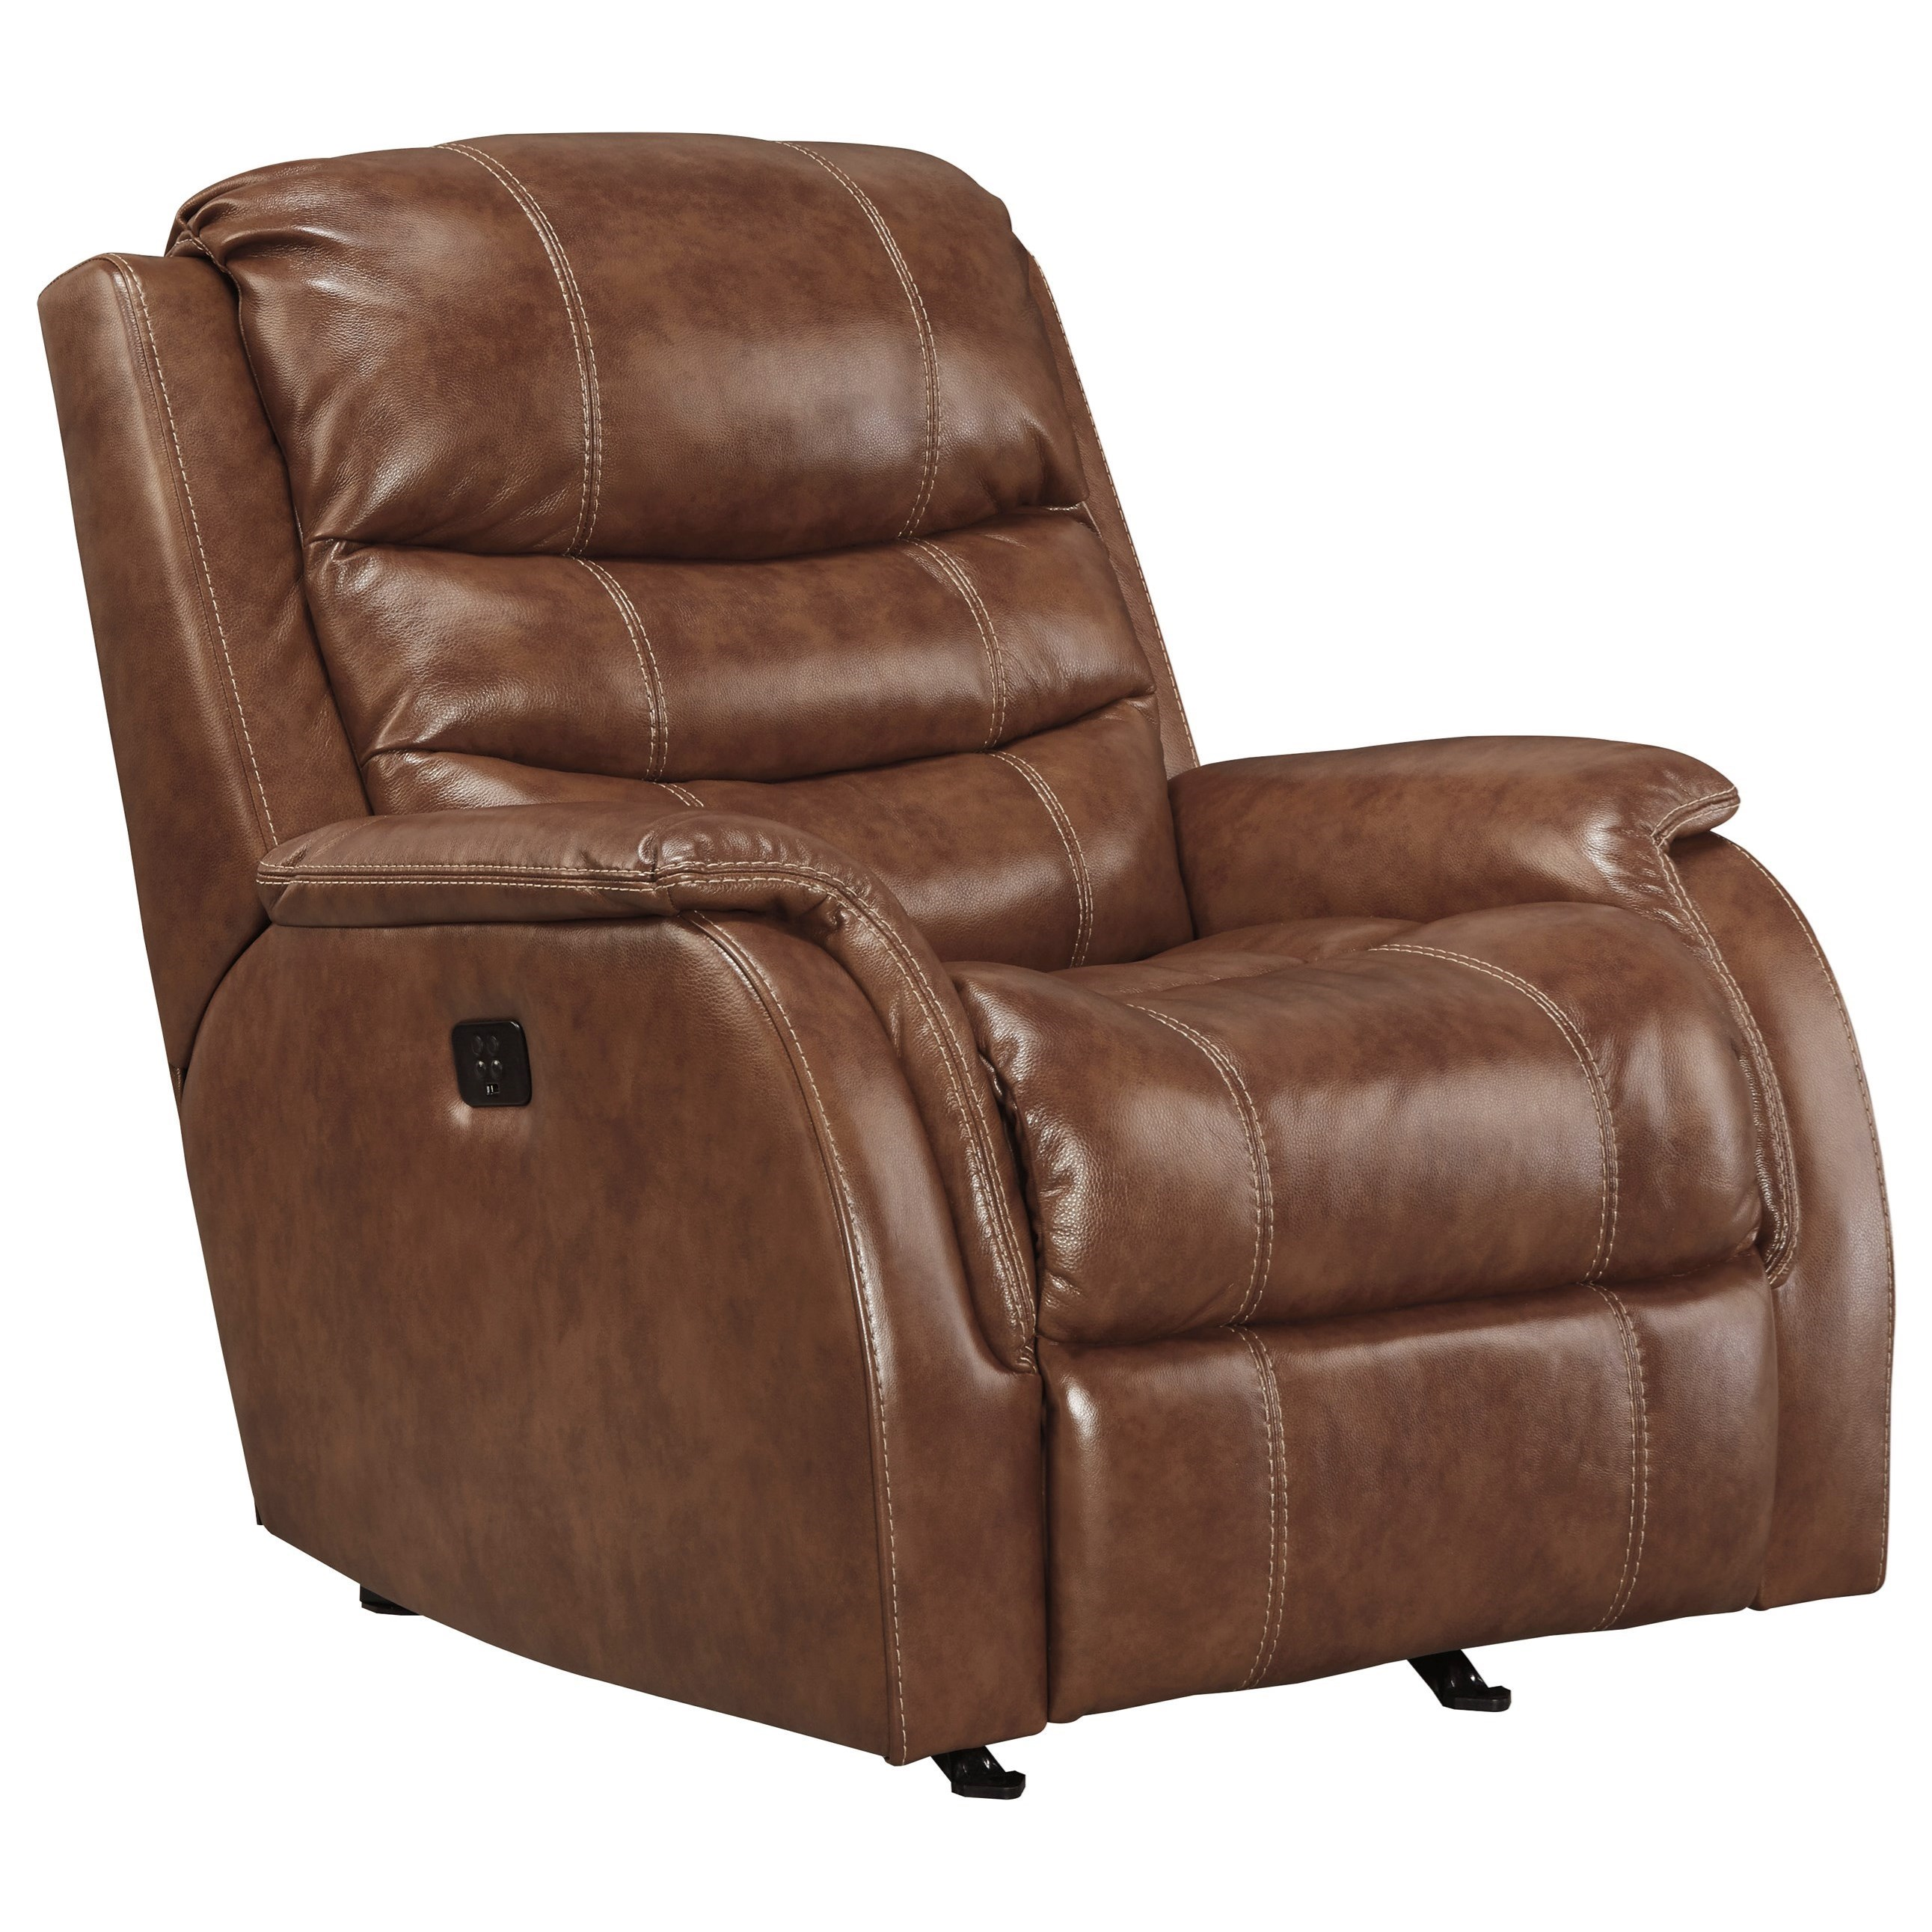 Signature Design by Ashley Metcalf Leather Match Power Rocker Recliner w/ Adjustable Headrest ...